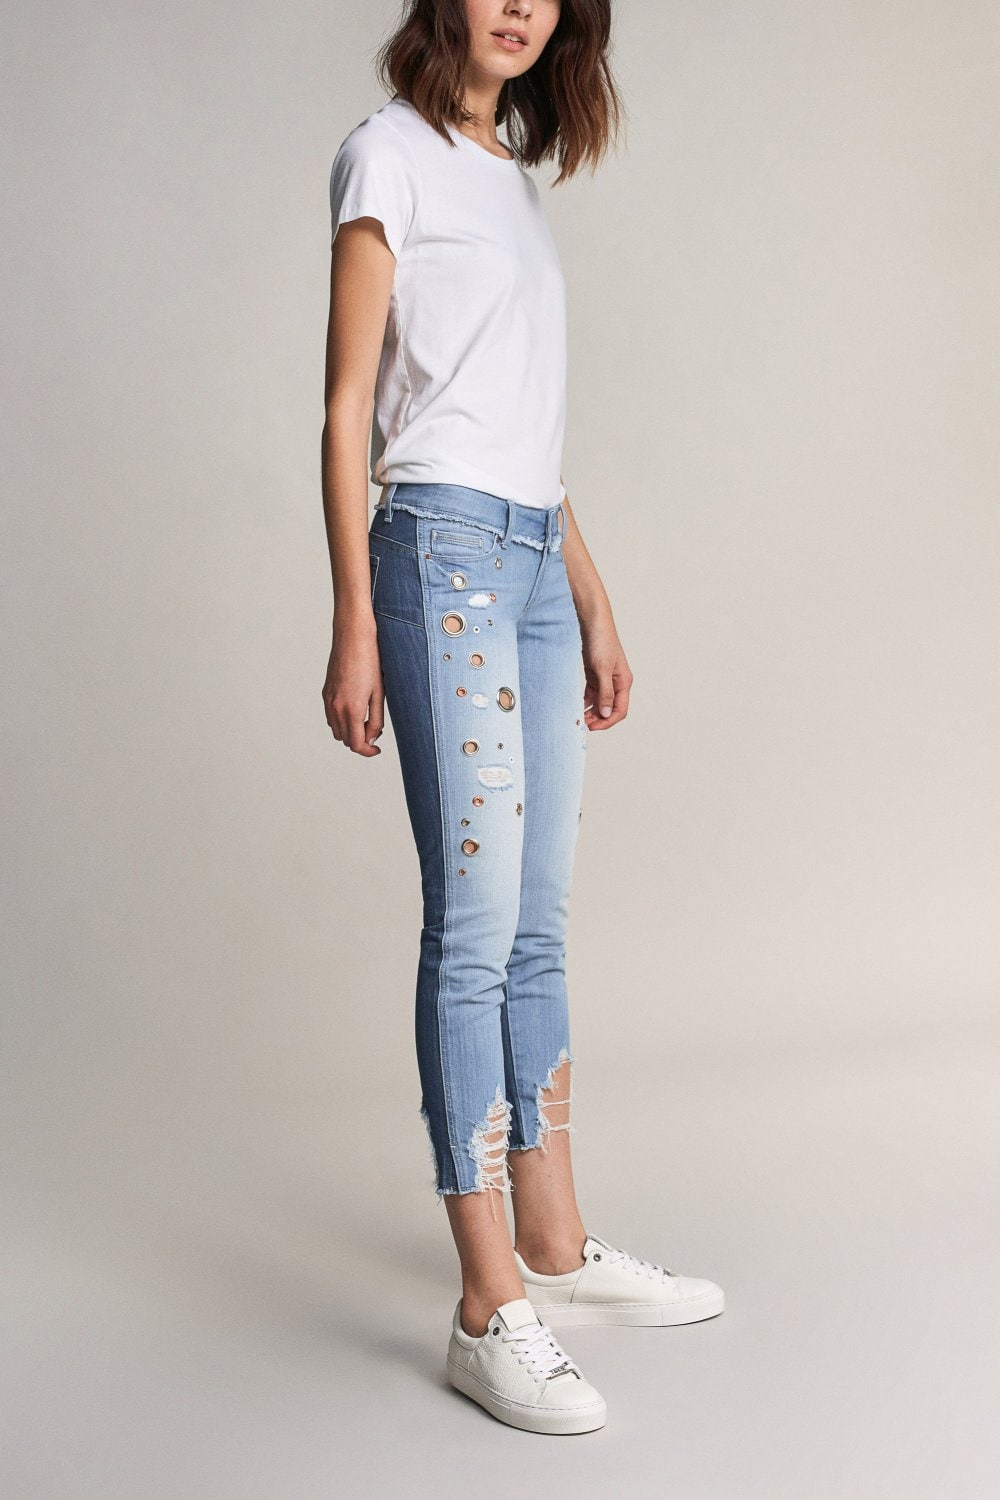 Shape Up capri jeans with eyelets - Salsa